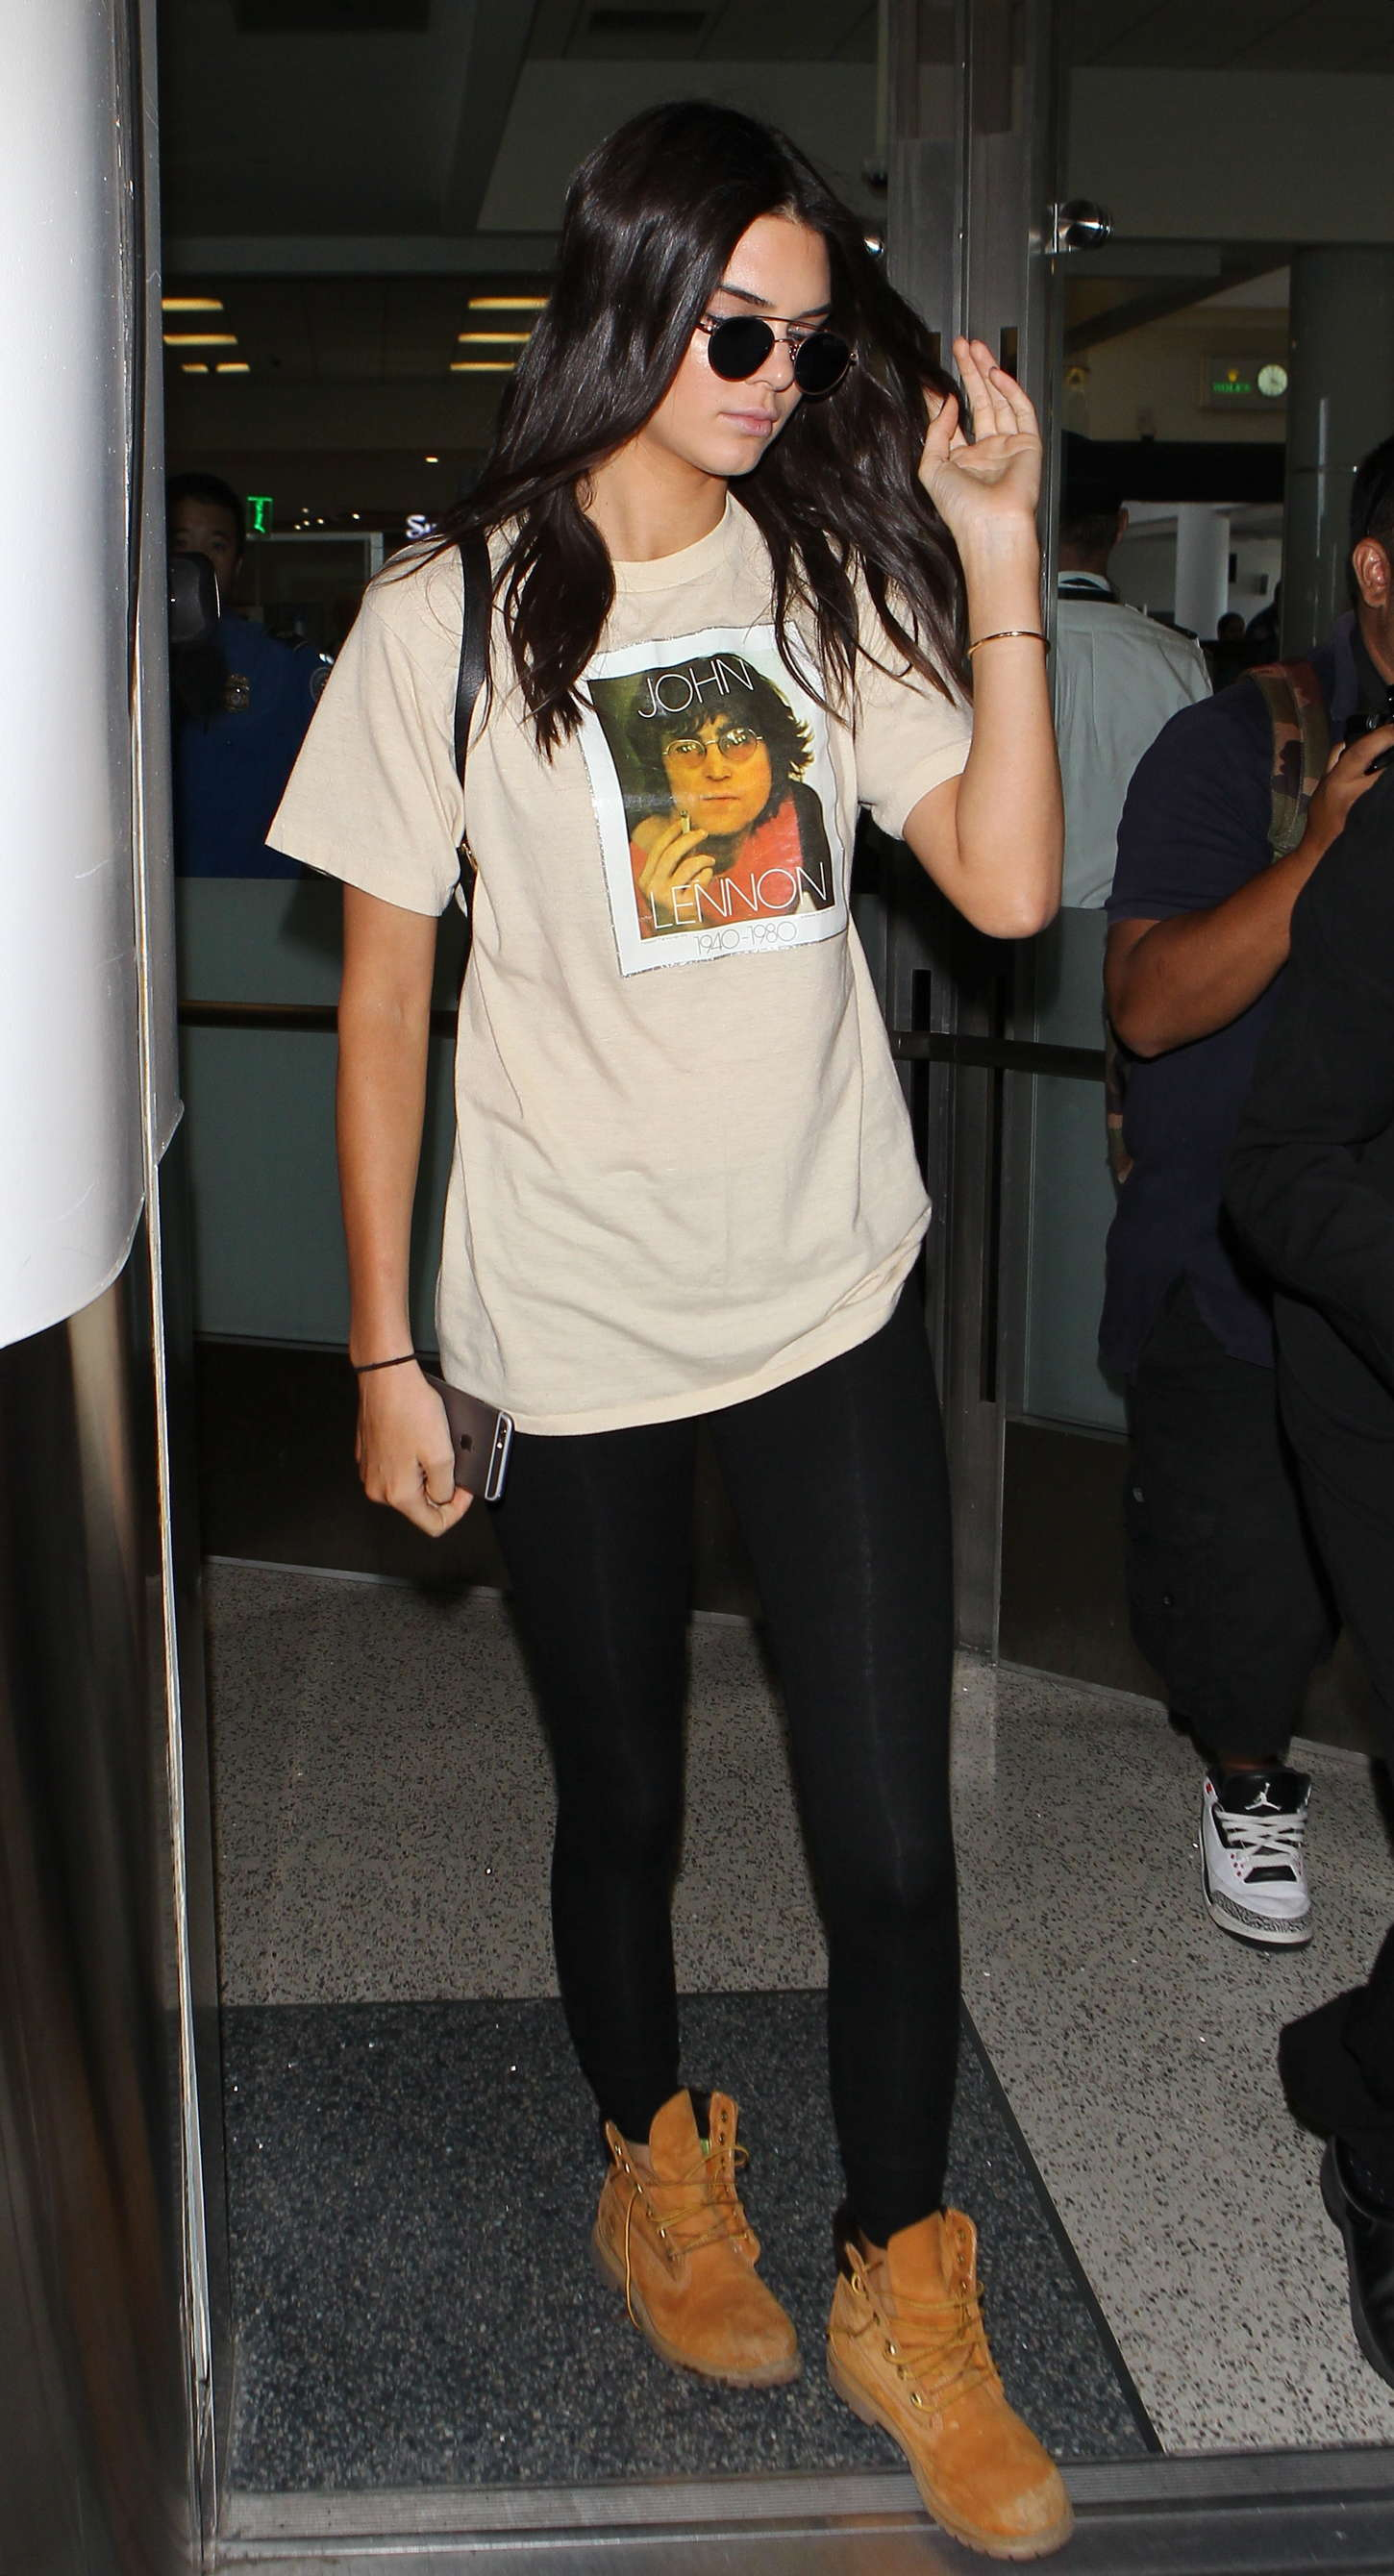 Kendall Jenner 2015 : Kendall Jenner in Tights at LAX -04